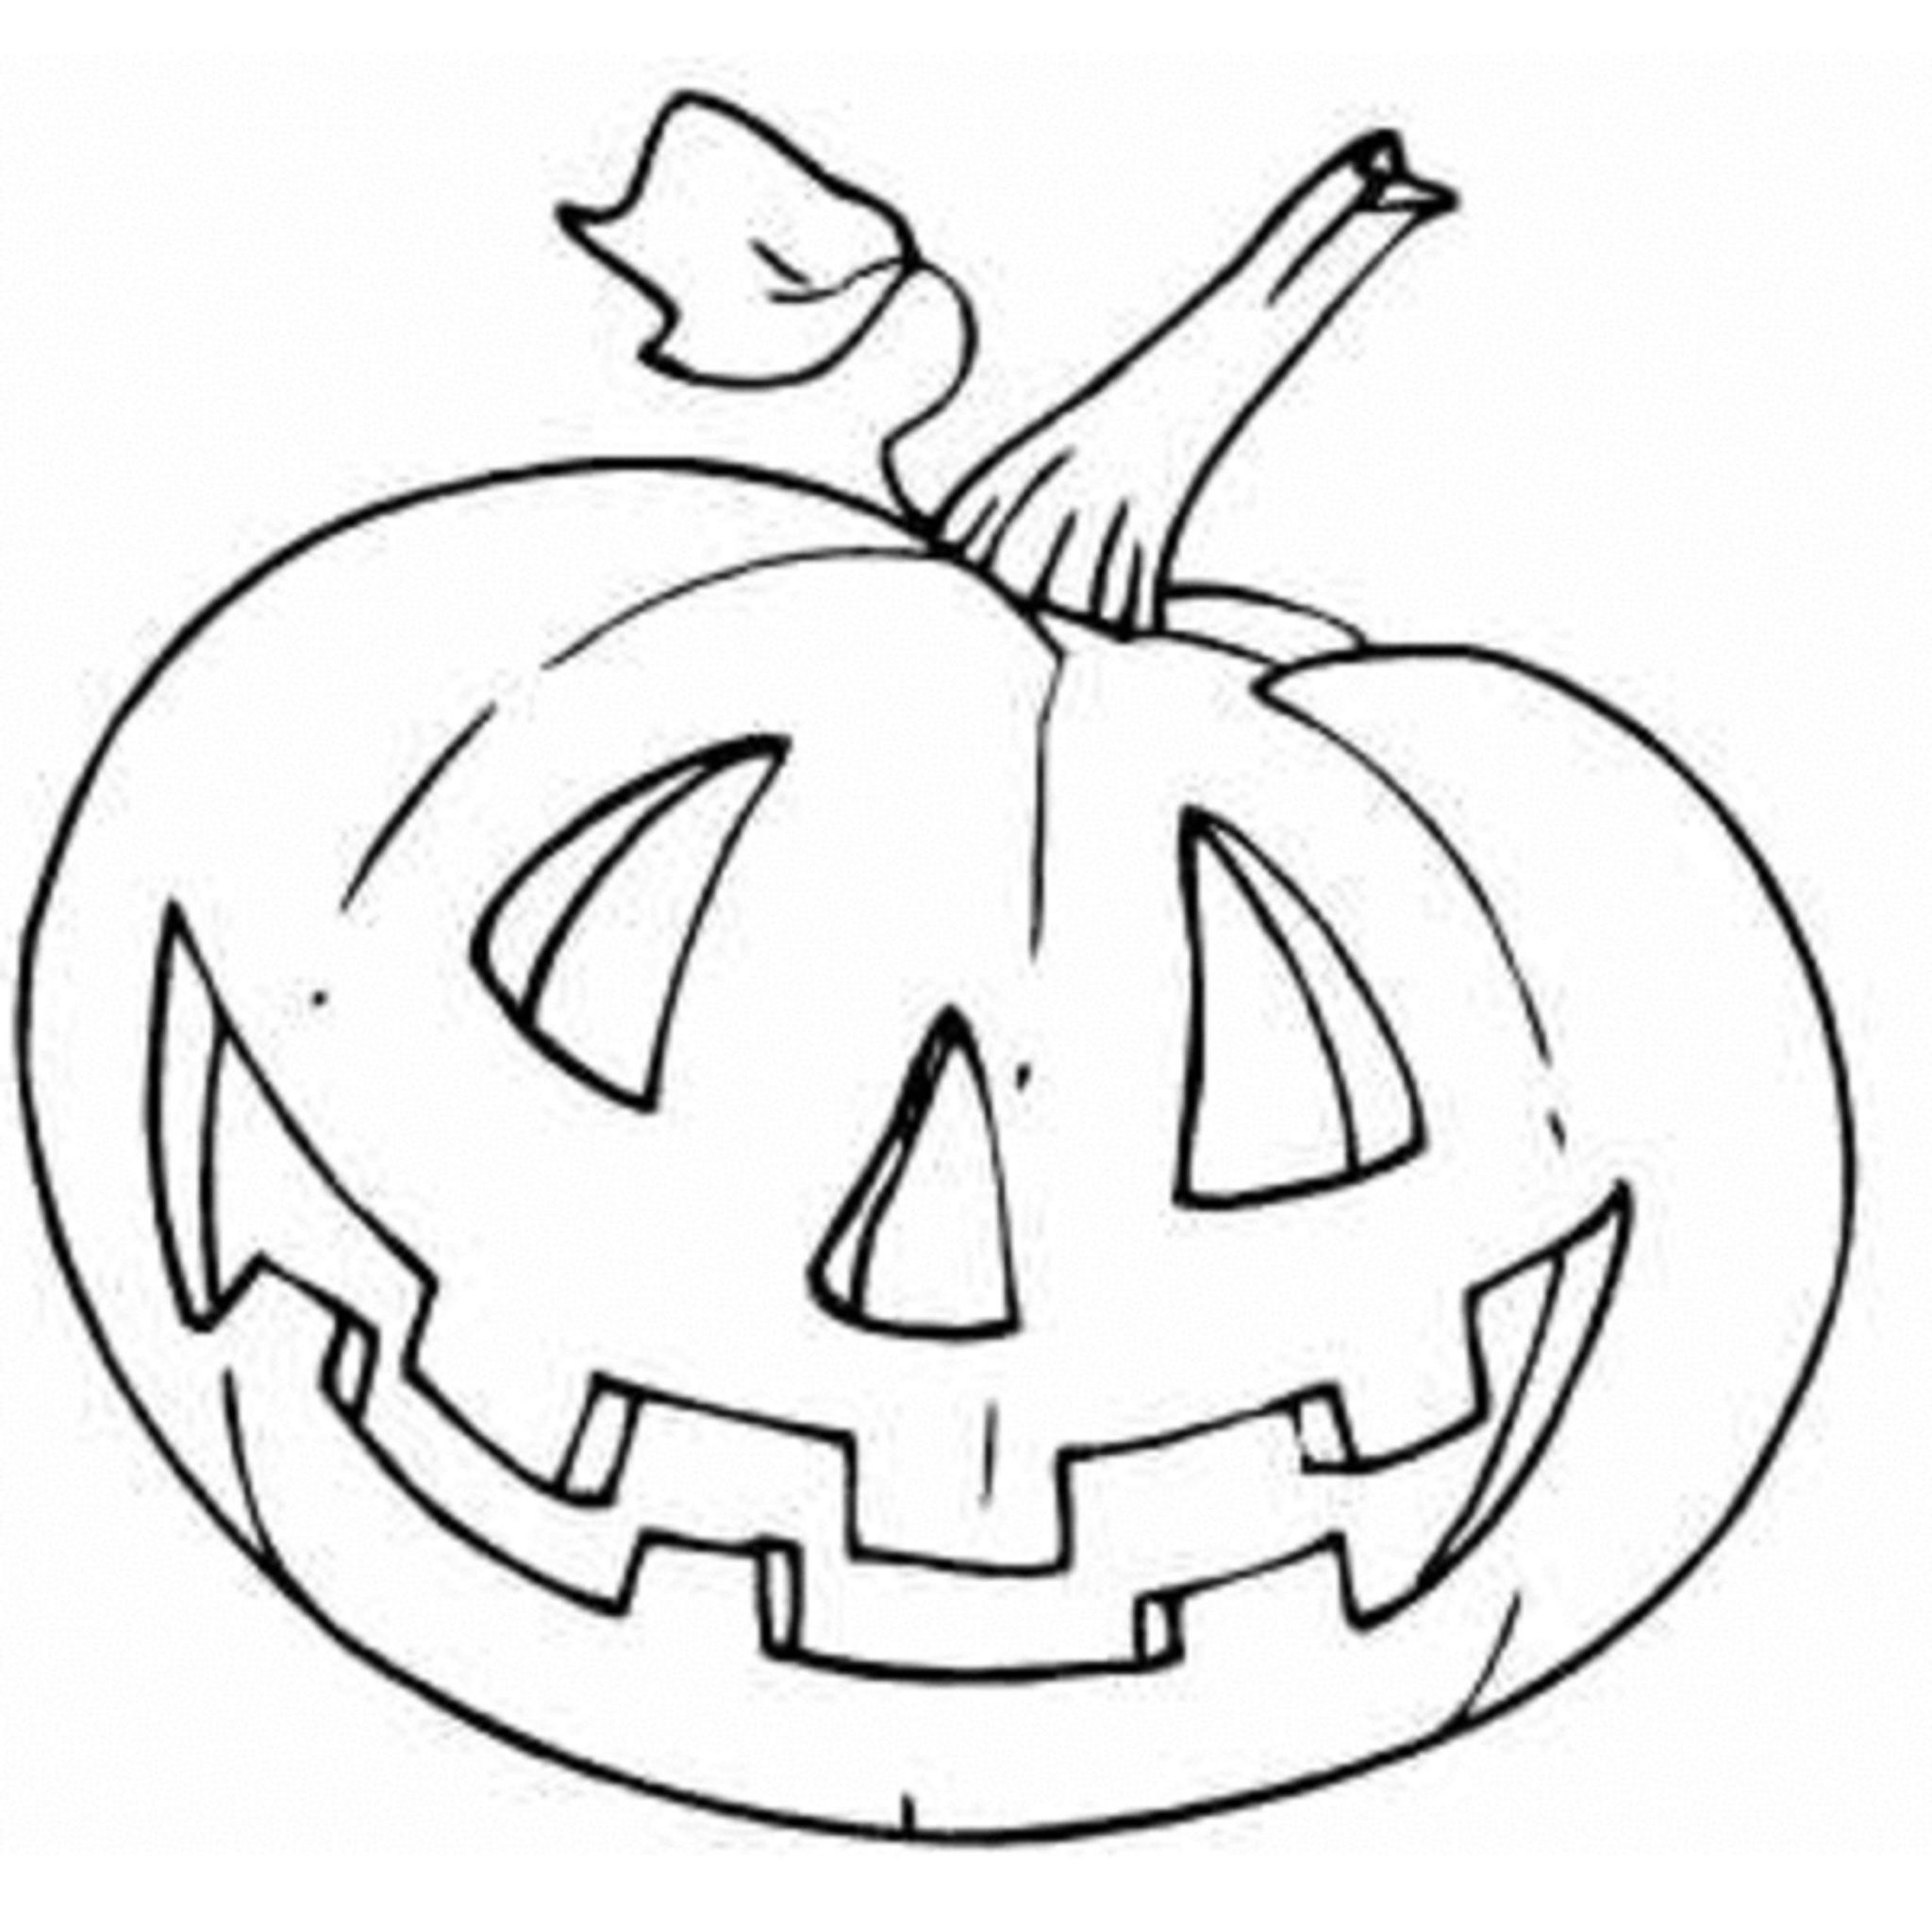 coloring for grade 3 3rd grade coloring pages fun sheets for stimulating your coloring for 3 grade